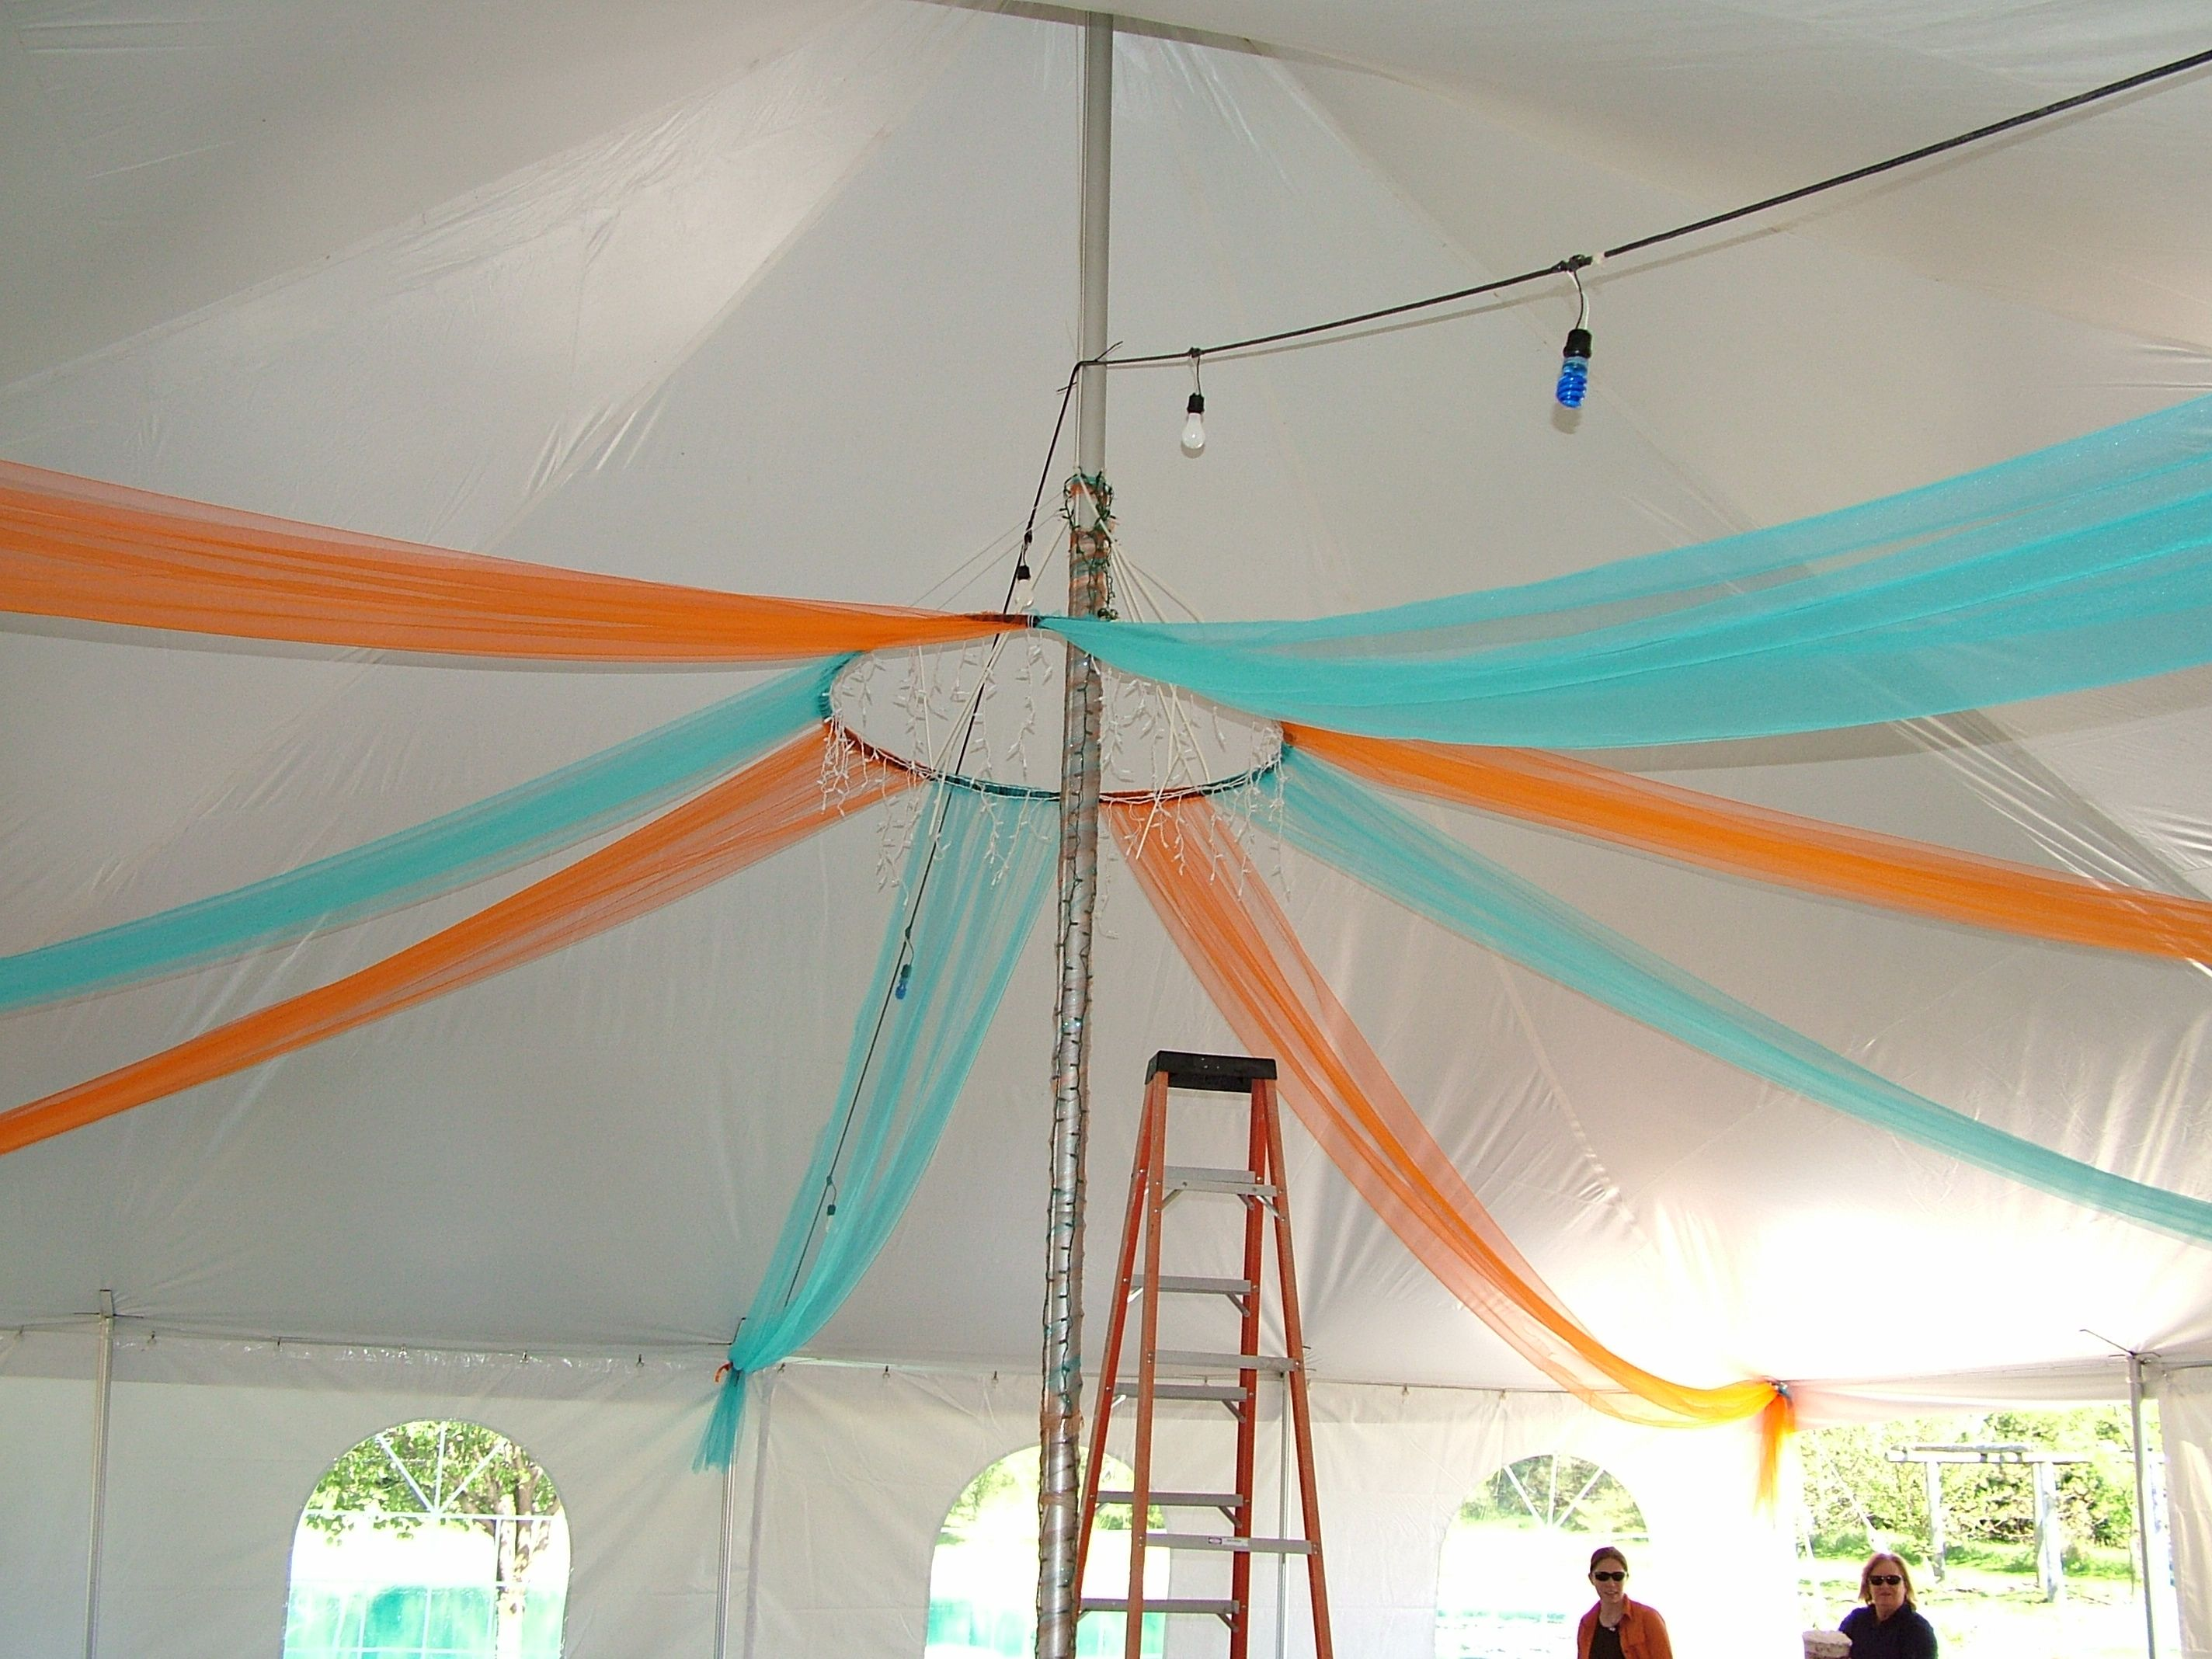 Tent decoration start with a hula hoop suspending from for Hula hoop decorations